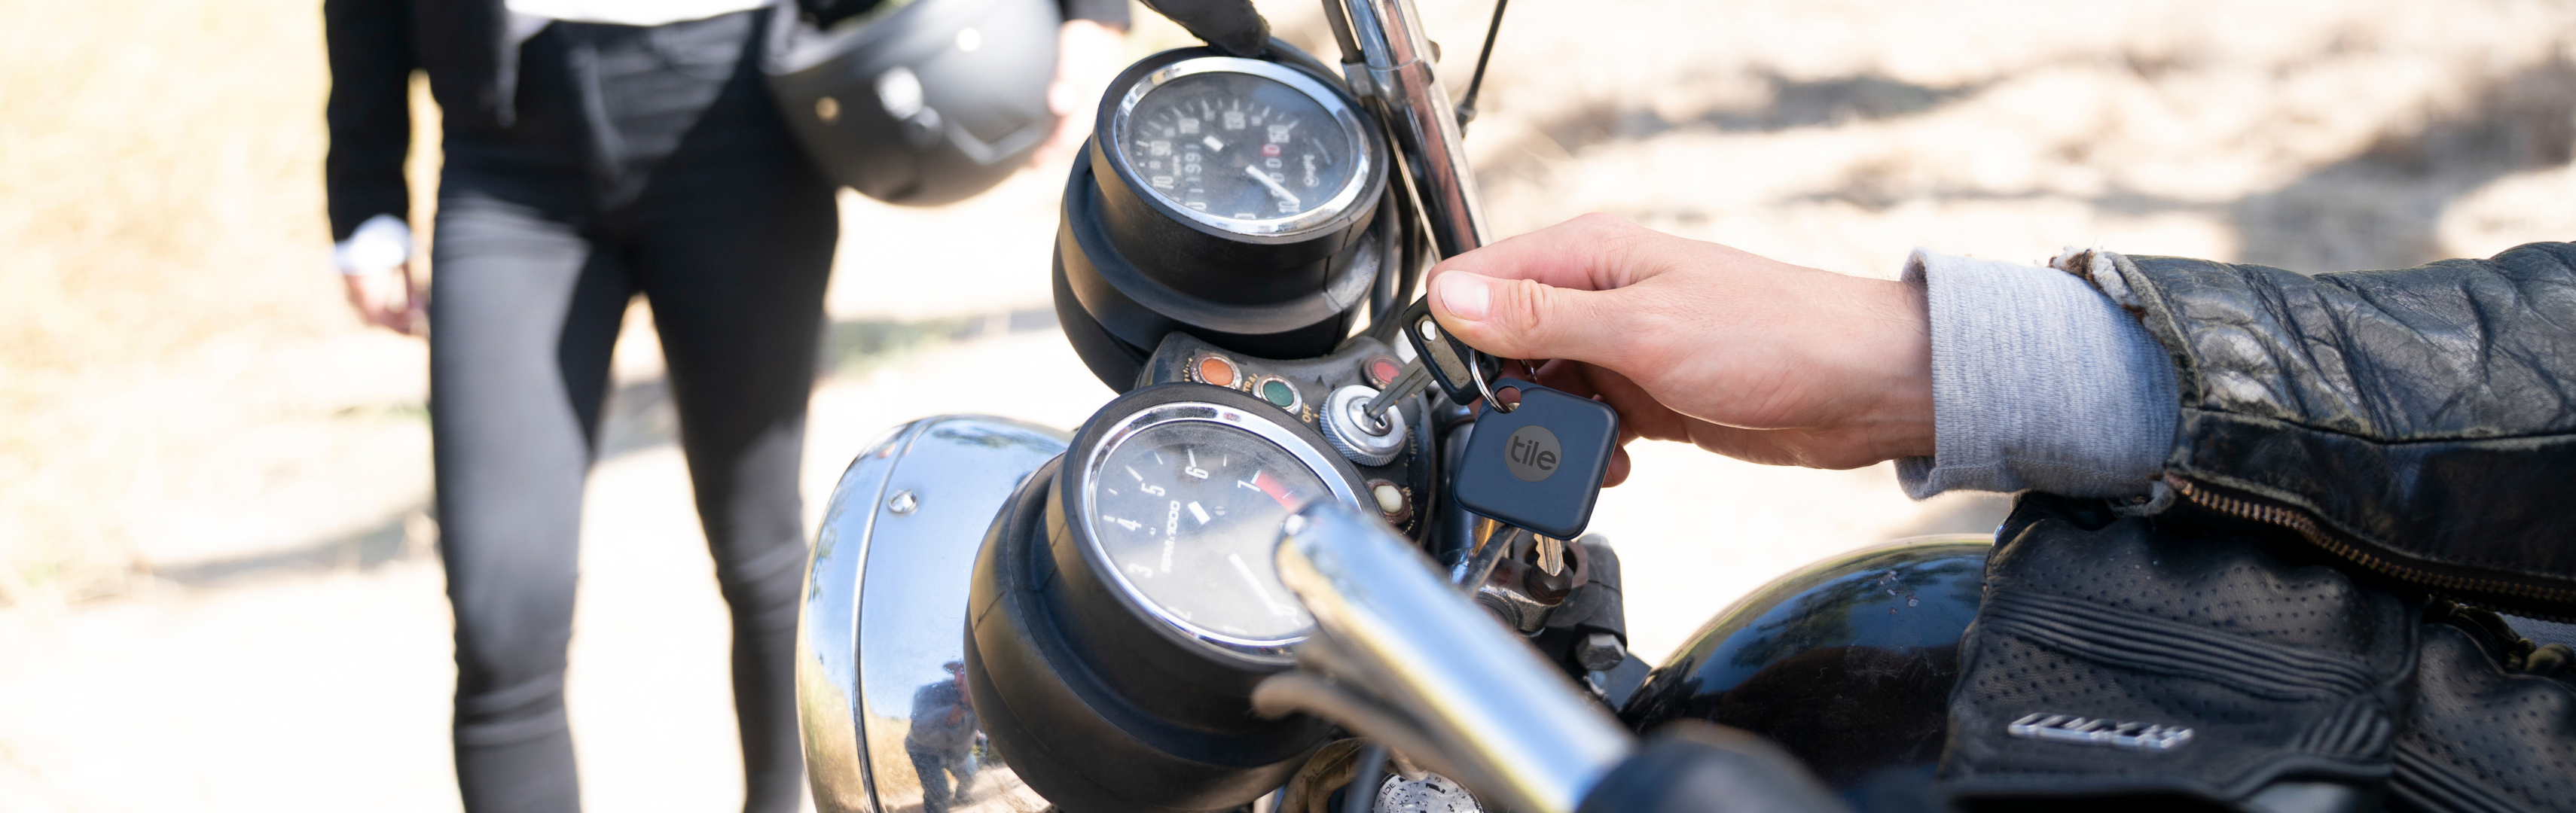 Use our Motorcycle Tracking Device to Find Your Bike